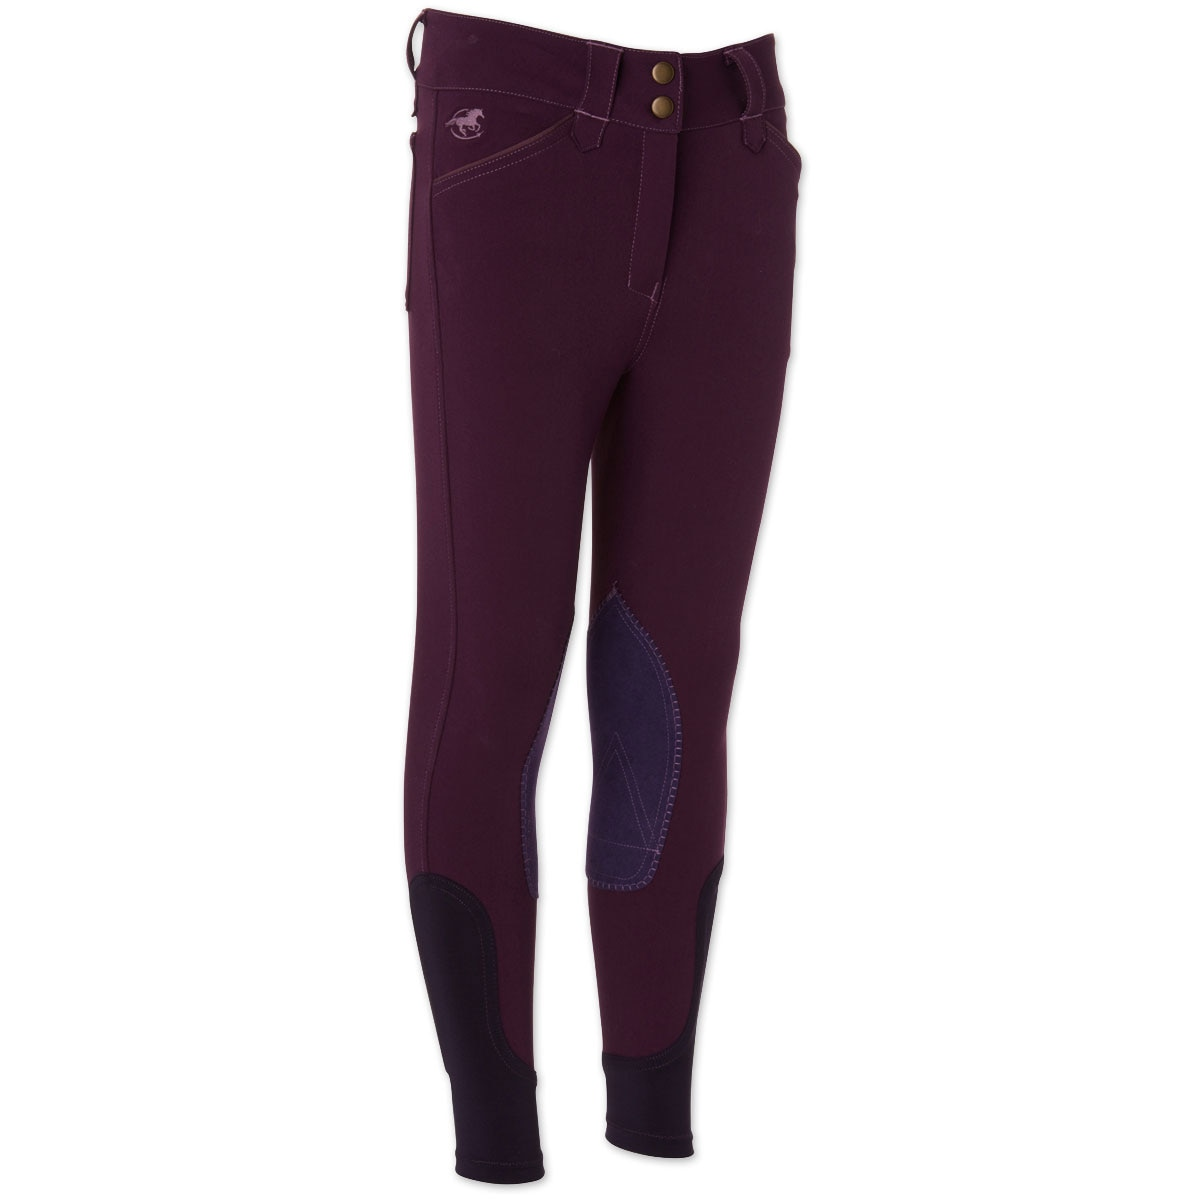 Piper Breeches by SmartPak- Girls Knee Patch - Sale!